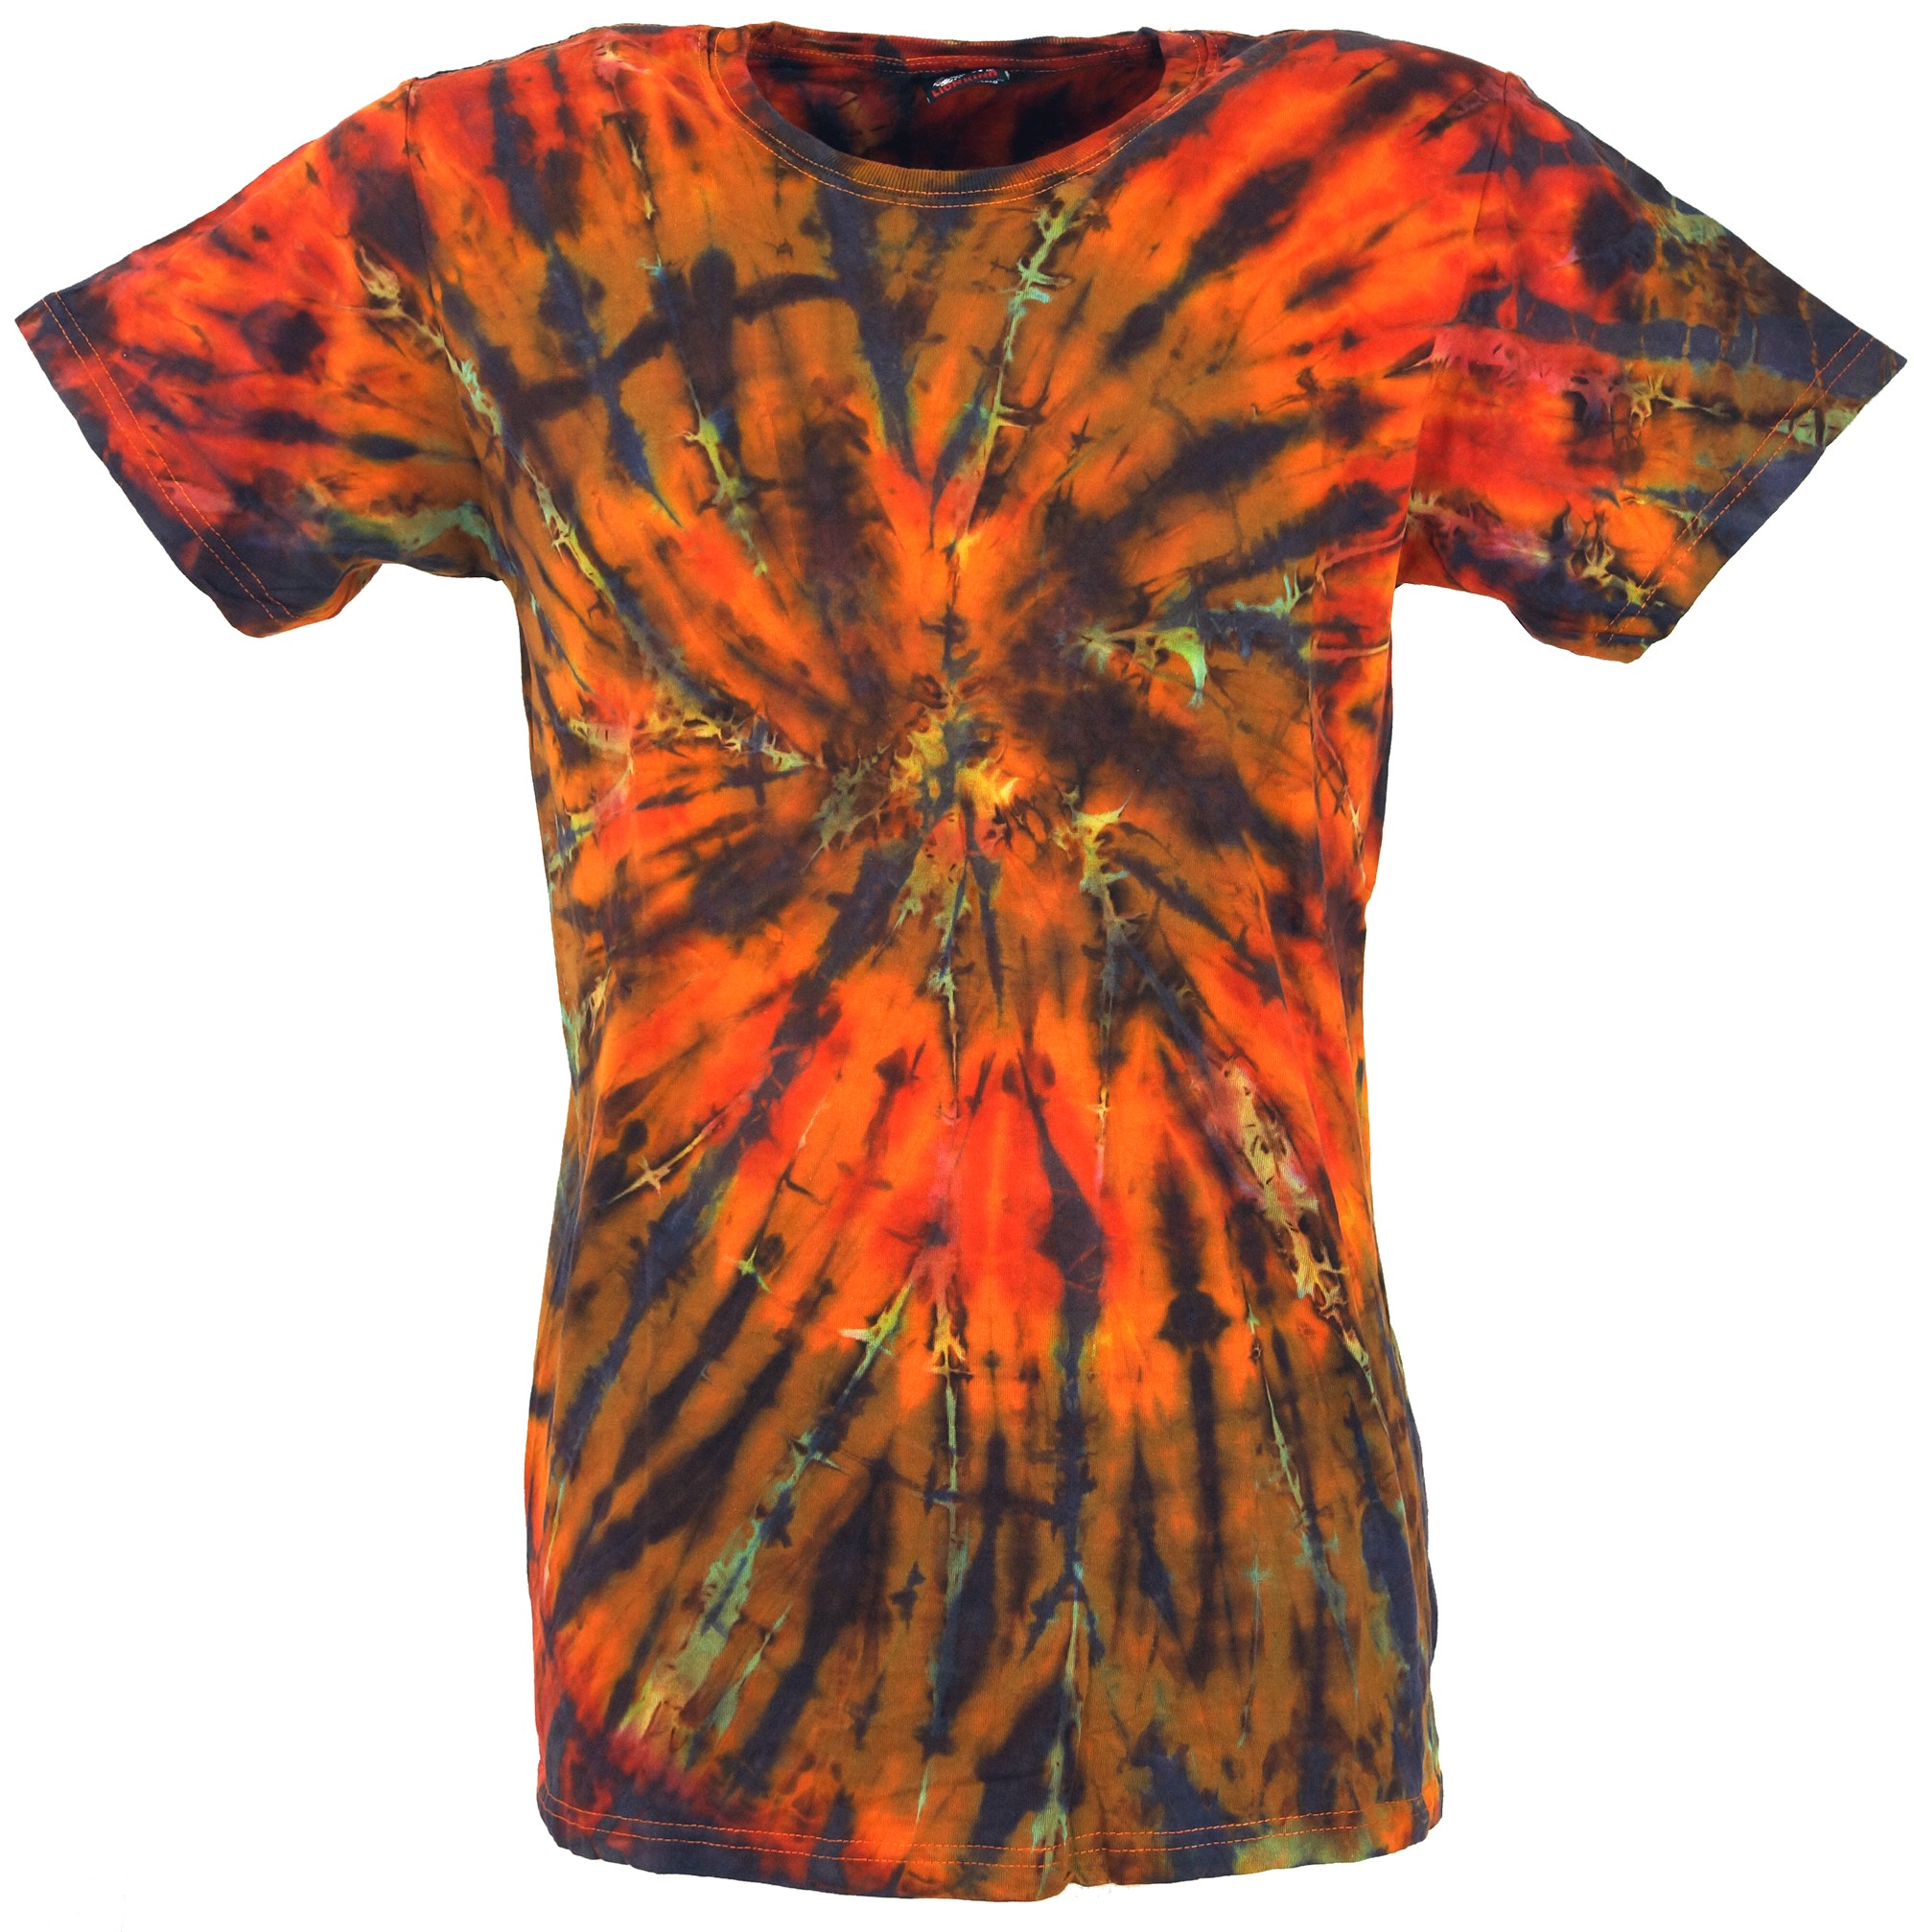 new products 25f64 69f40 Batik T-Shirt, Herren Kurzarm Tie Dye Shirt - orange/bunt Spirale